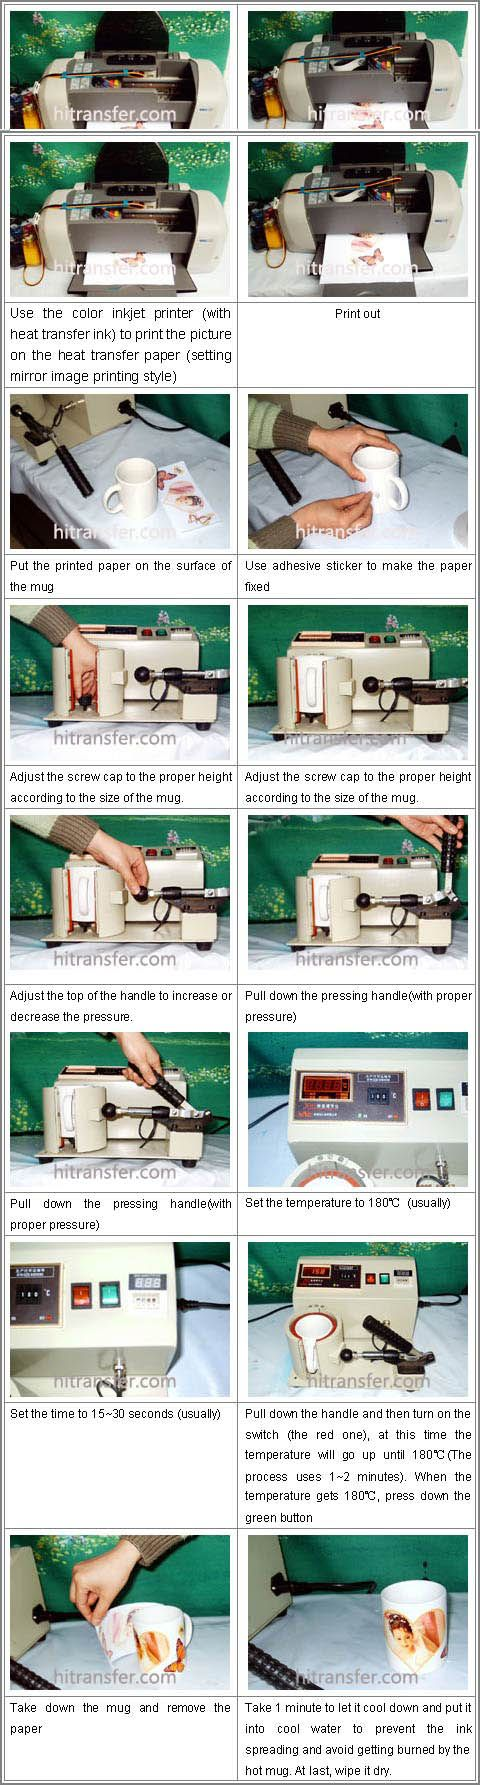 The mug heat press machine is widely used in transferring all kinds of pictures onto mugs